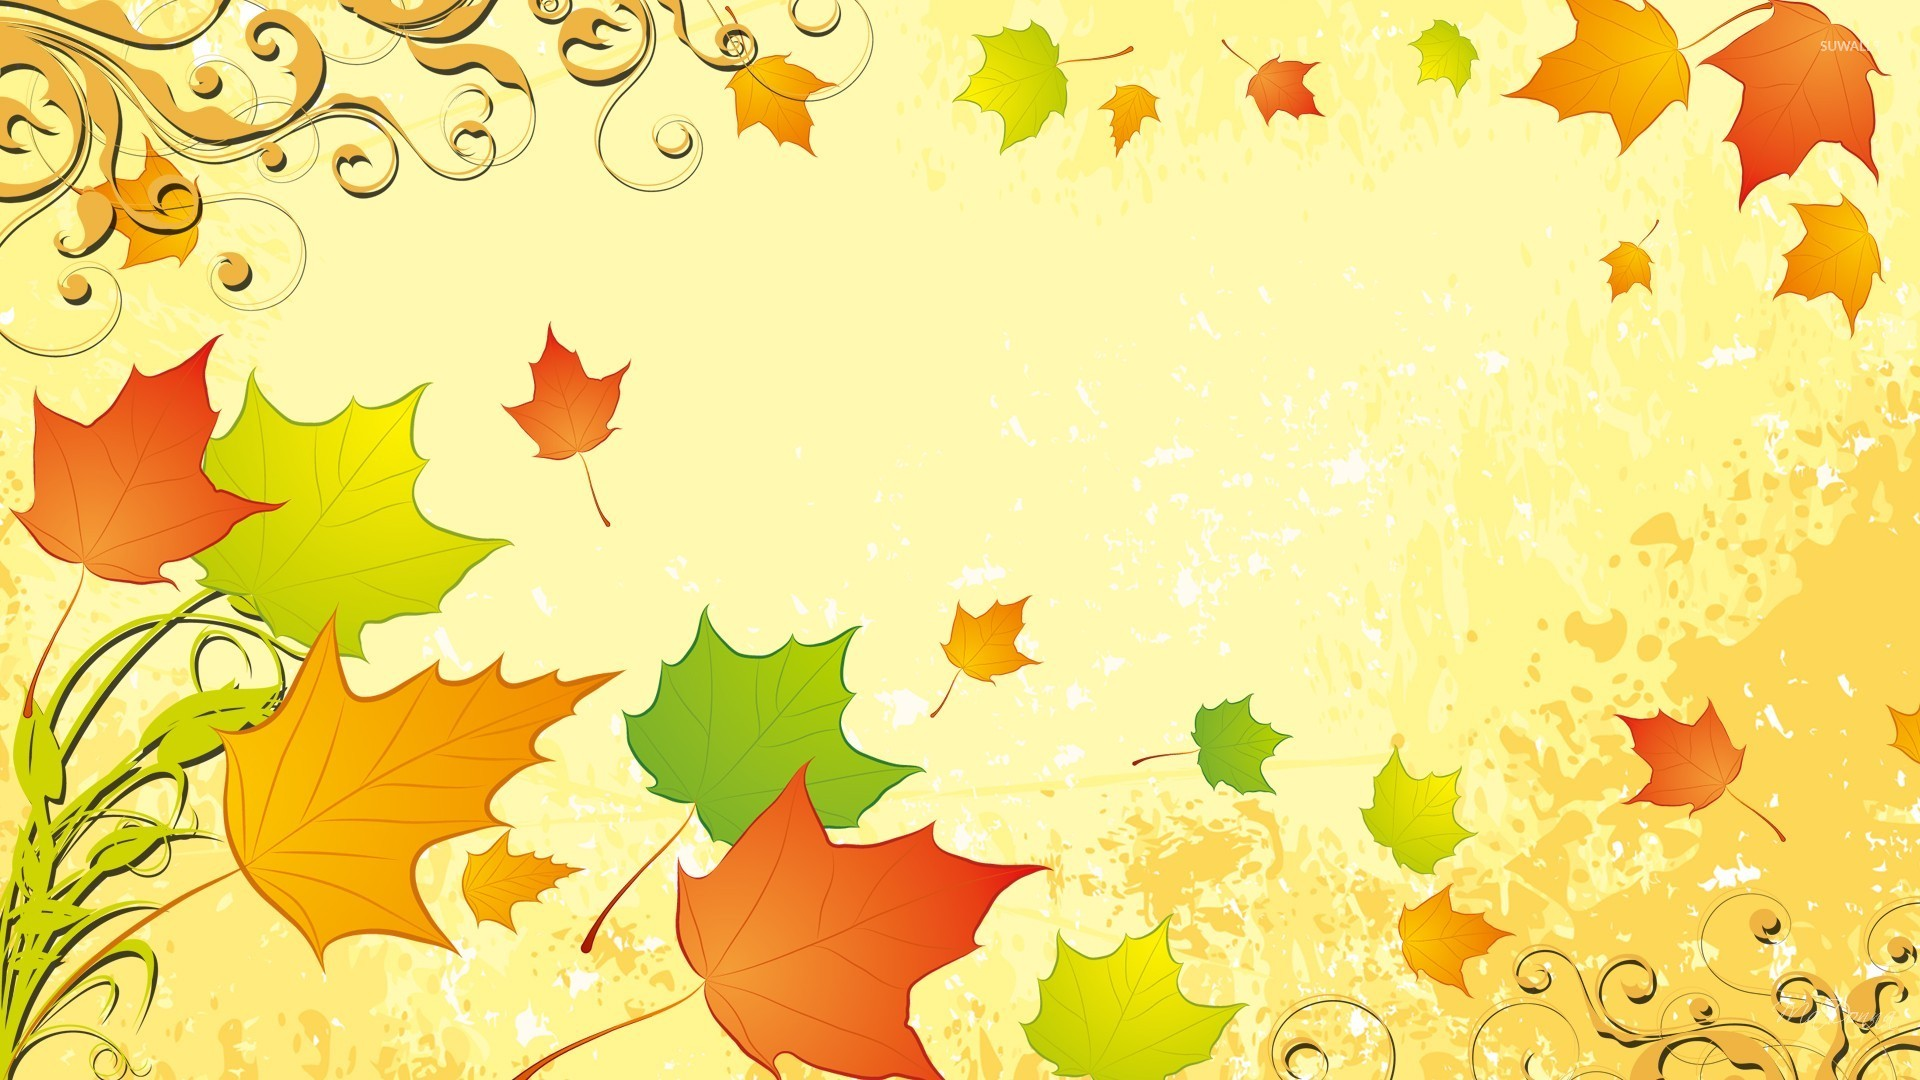 Autumn leaves [11] wallpaper Vector wallpapers